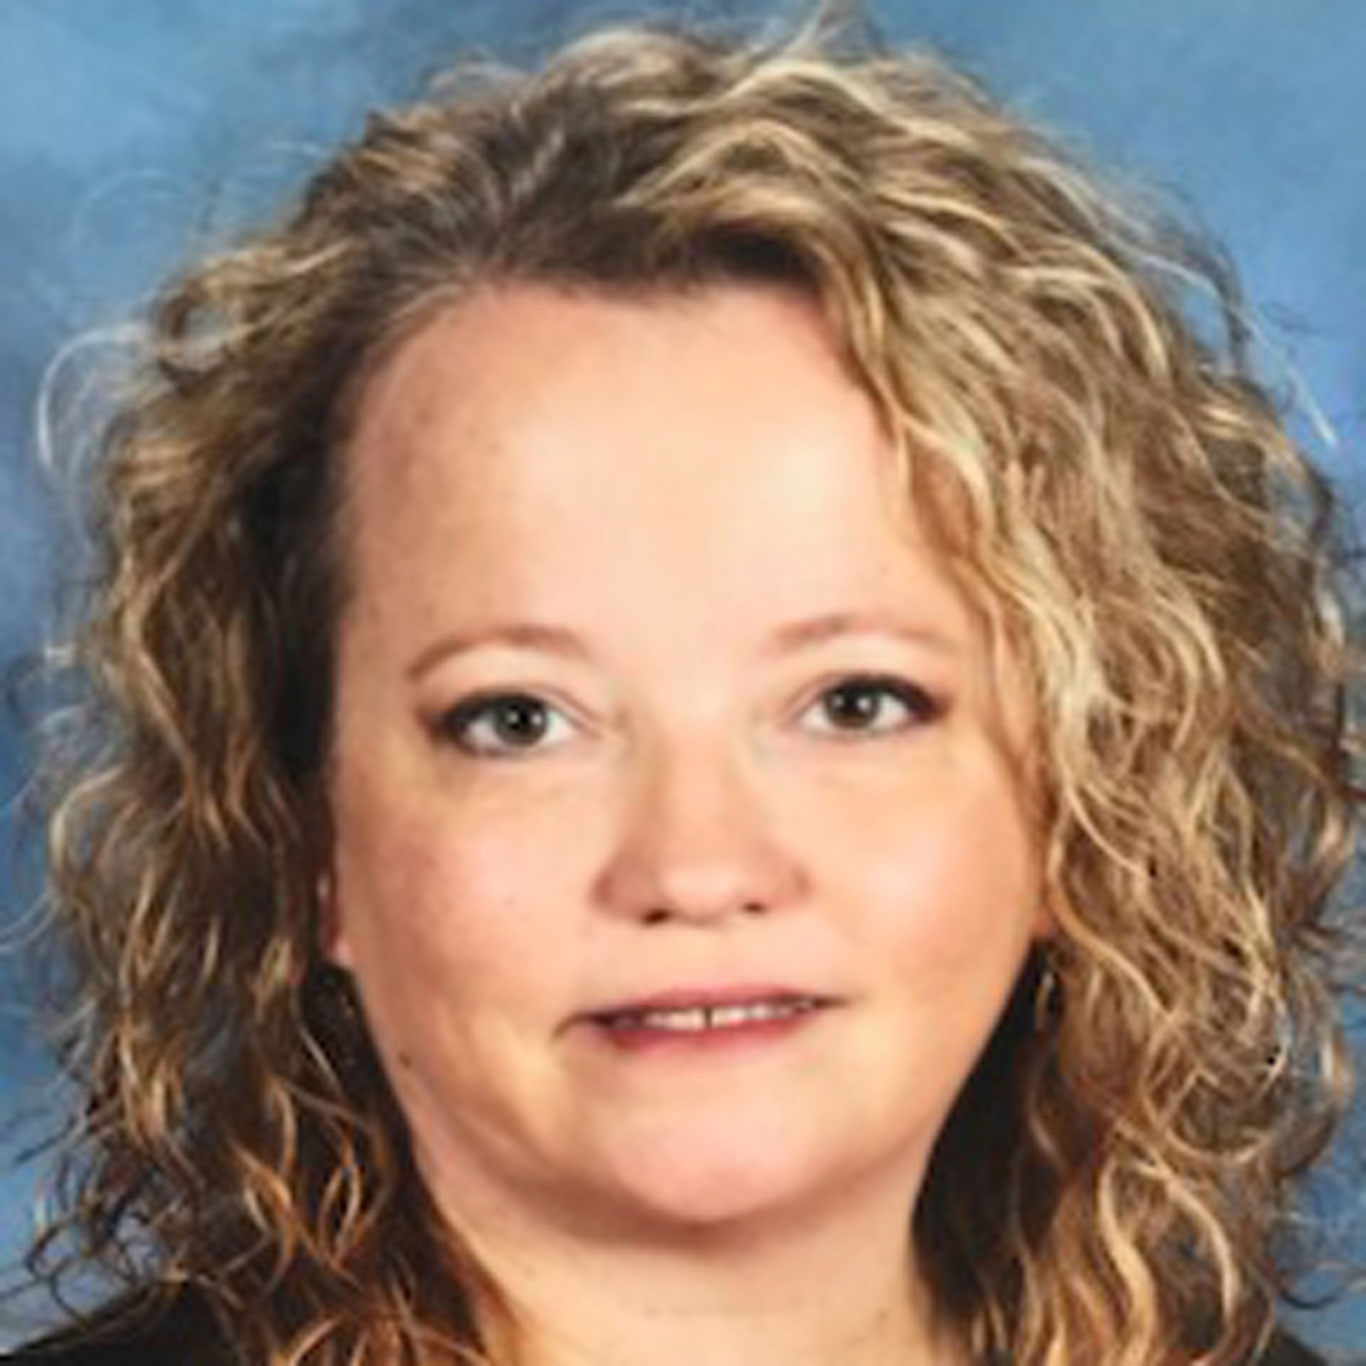 Chris Gibson is the STREAM lab teacher for Grades K-6 at S.F. Austin STEM Academy in Jones Creek, TX. She is currently in her 17th year of teaching and is passionate about providing hands-on STEM and 21st-century learning experiences for every student at the school. Chris served on the committee responsible for changing S.F. Austin to a STEM academy and loves seeing her students reap the benefits. She was a presenter at the 2017 Texas State STEM Conference and was named the S.F. Austin Elementary Teacher of the Year.